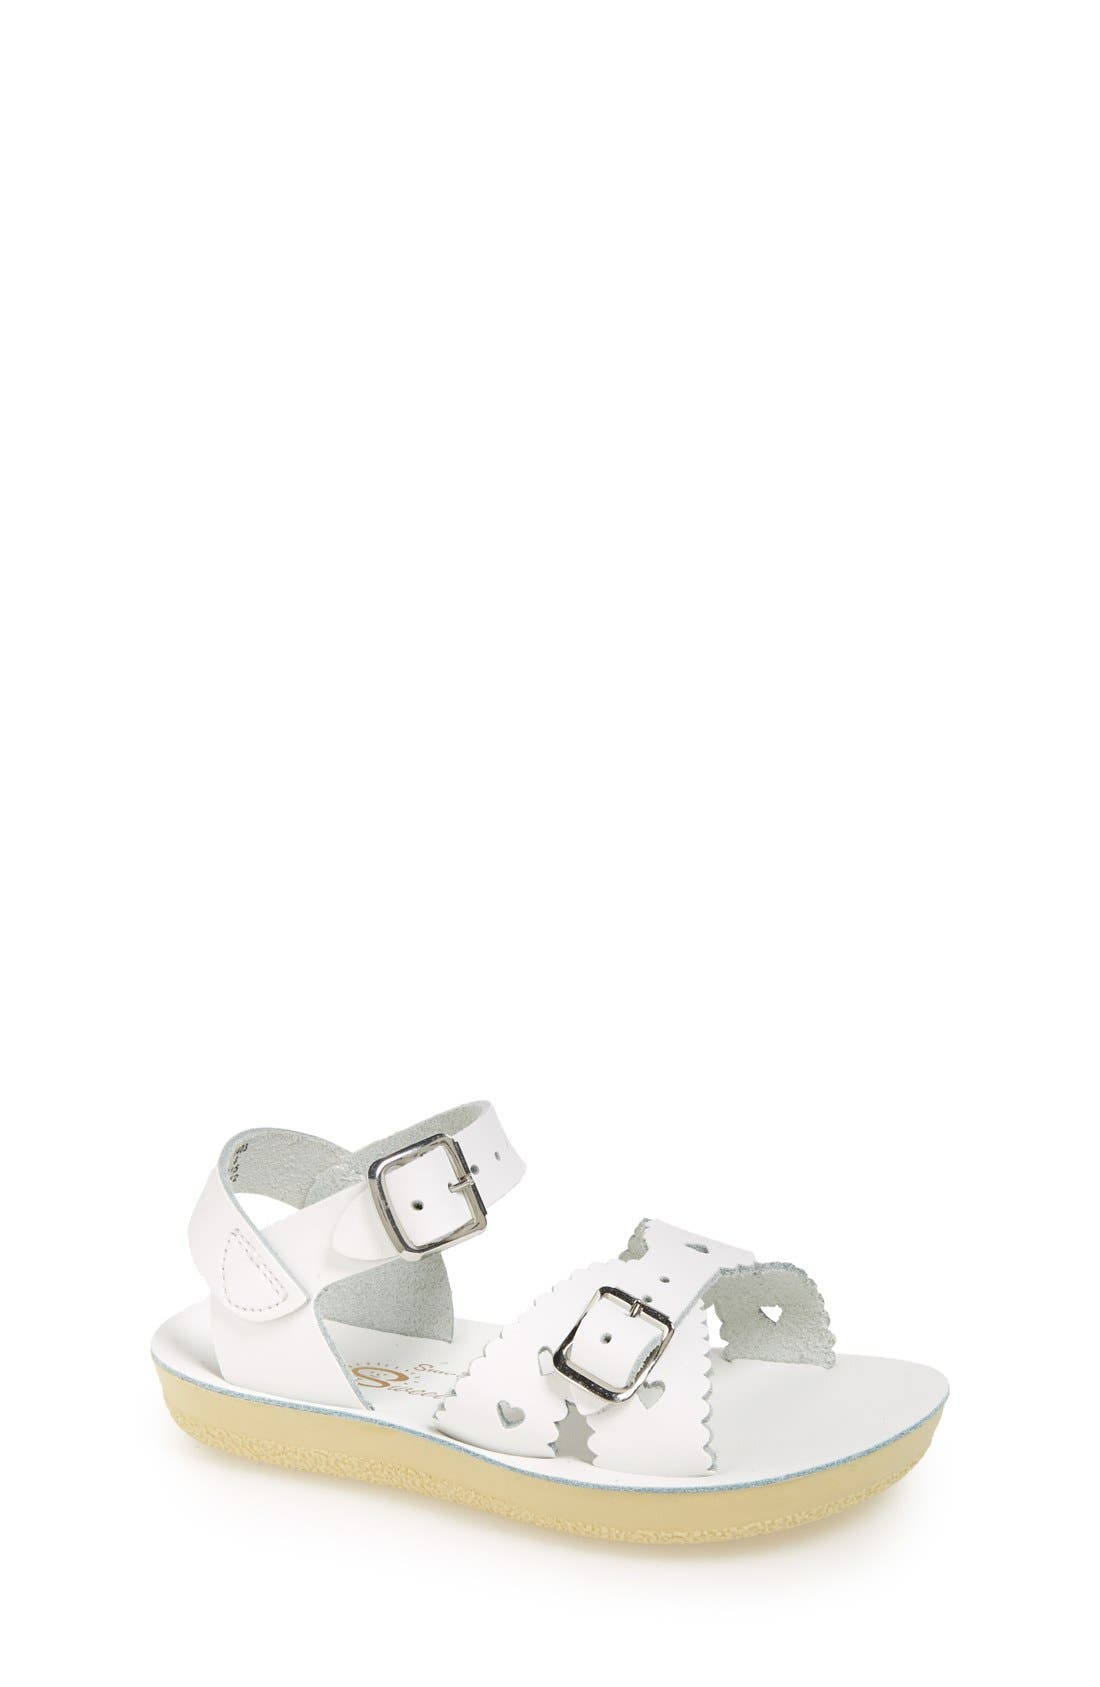 Salt Water Sandals by Hoy 'Sweetheart' Sandal (Walker, Toddler & Little Kid)